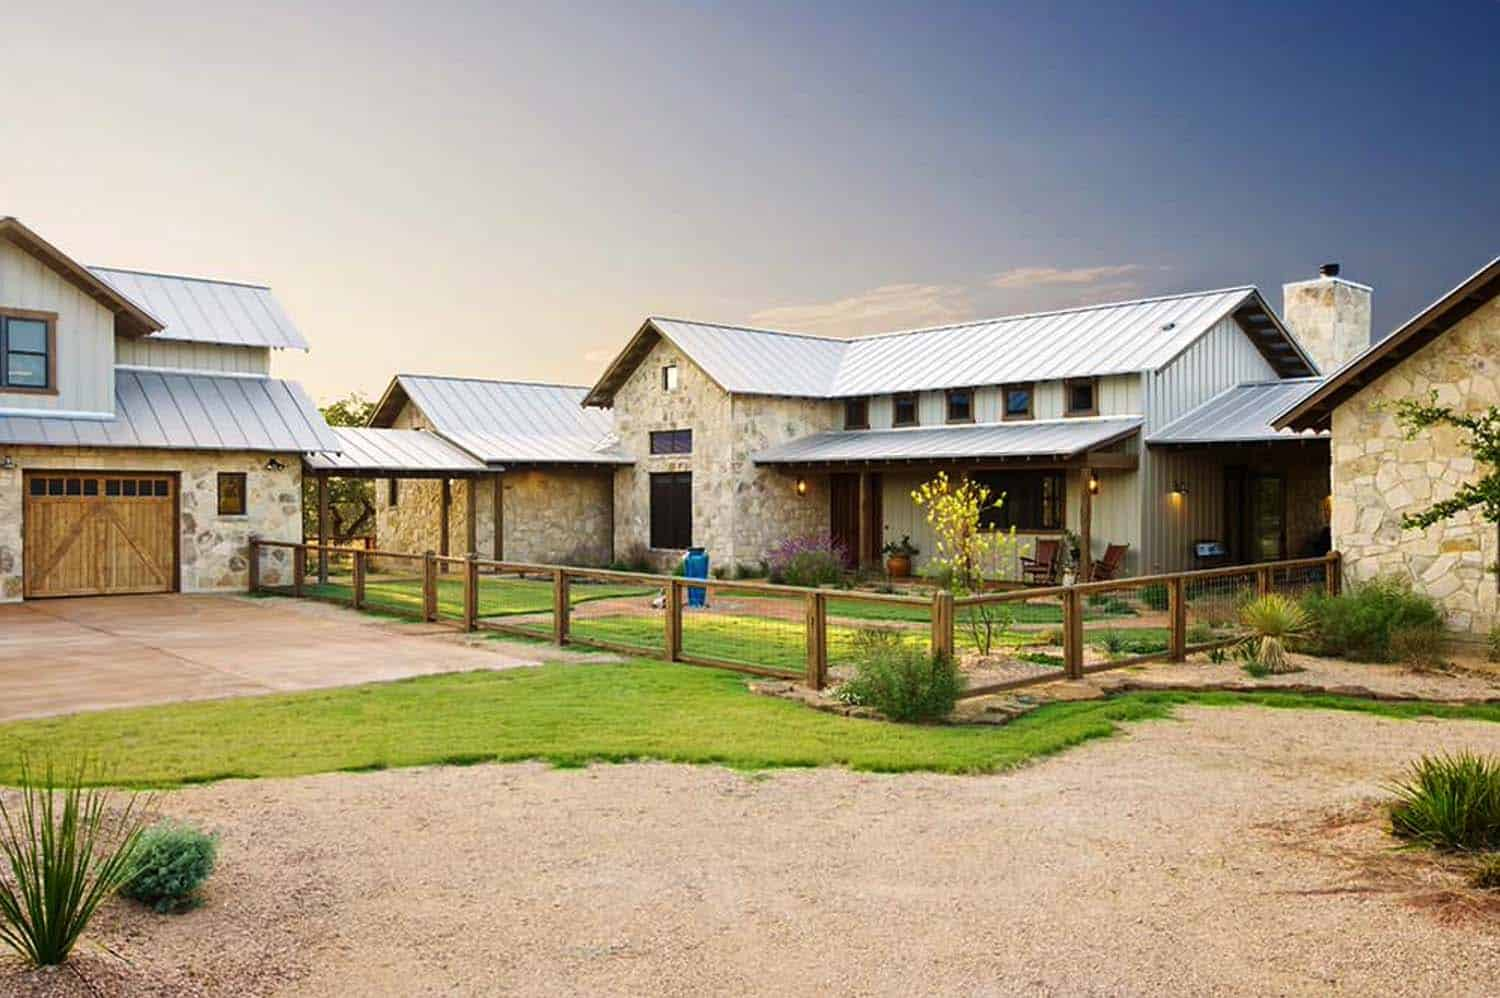 Rustic ranch house designed for family gatherings in texas for Ranch style house designs